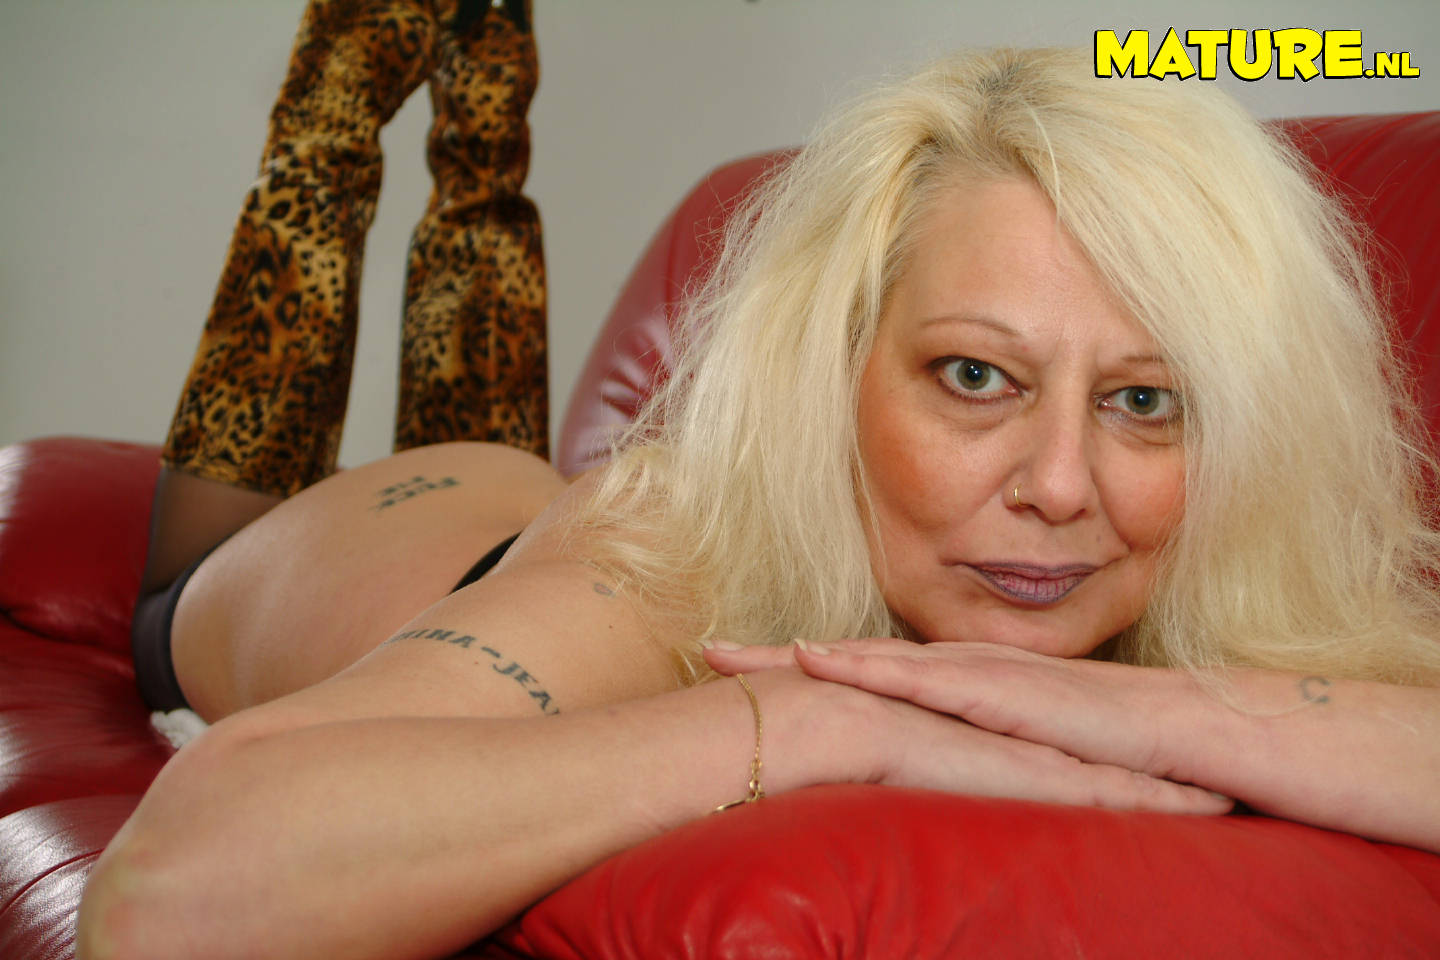 Mature nl freeones